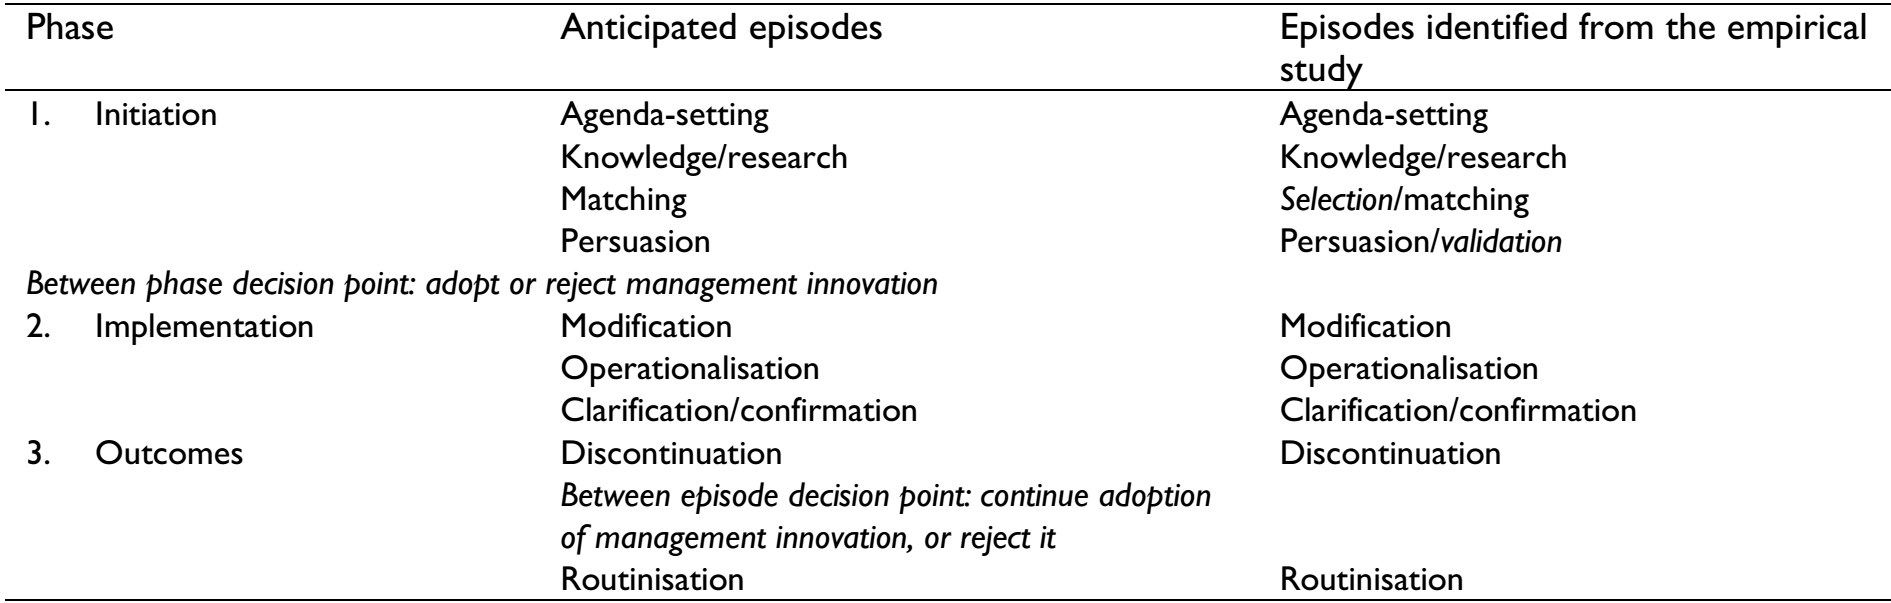 Phases and episodes of management innovation identified in the study ...